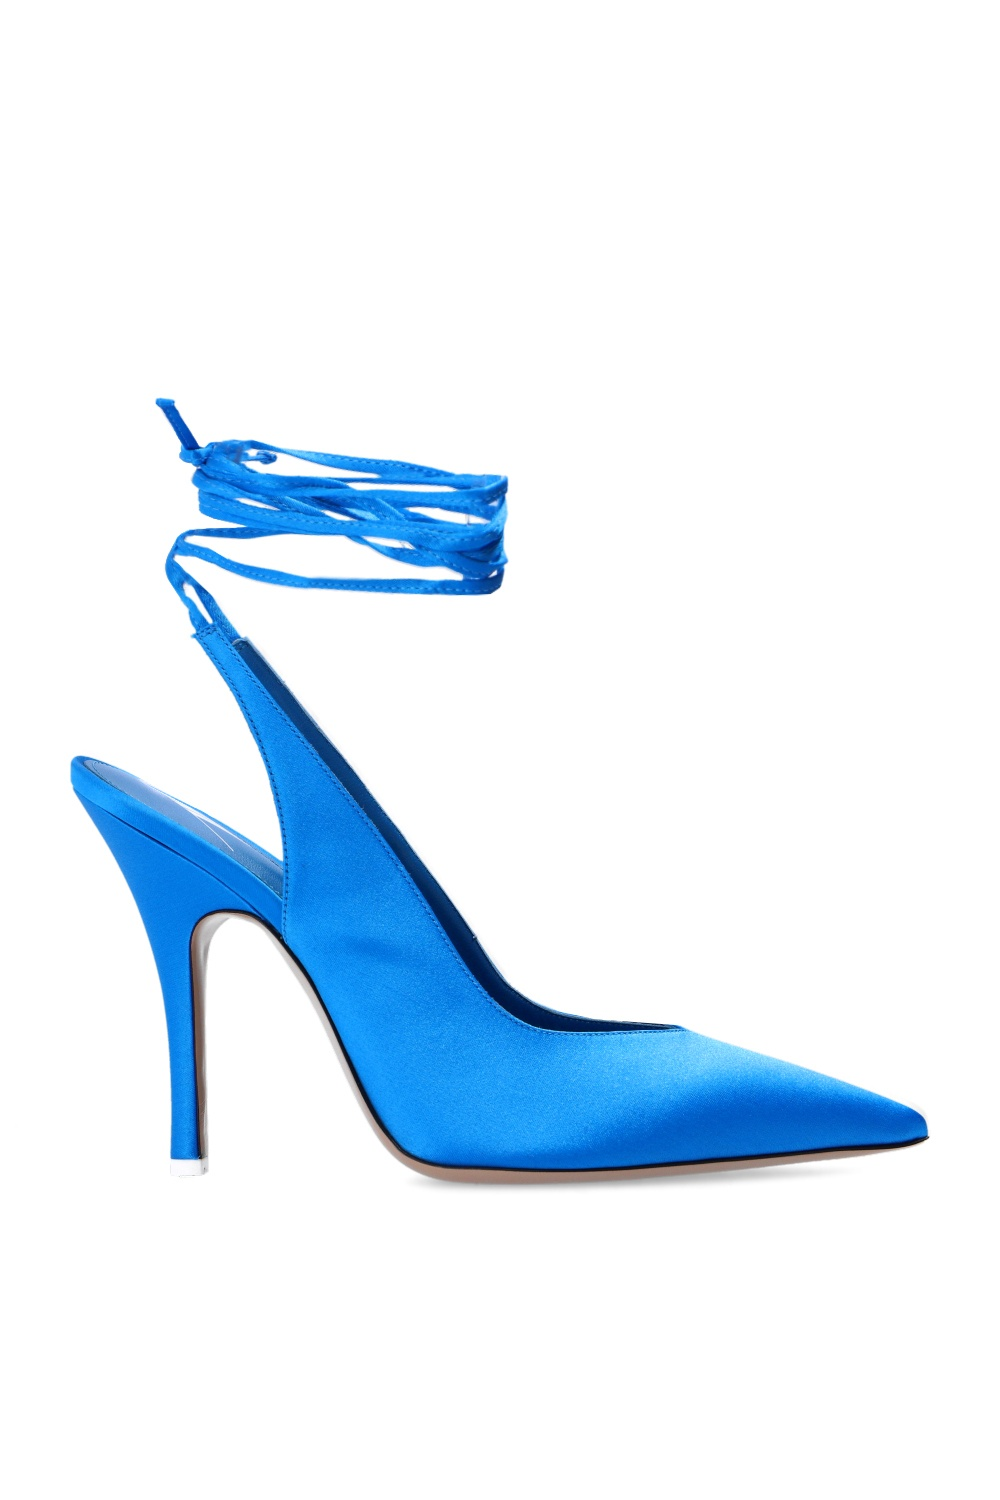 The Attico Stiletto pumps